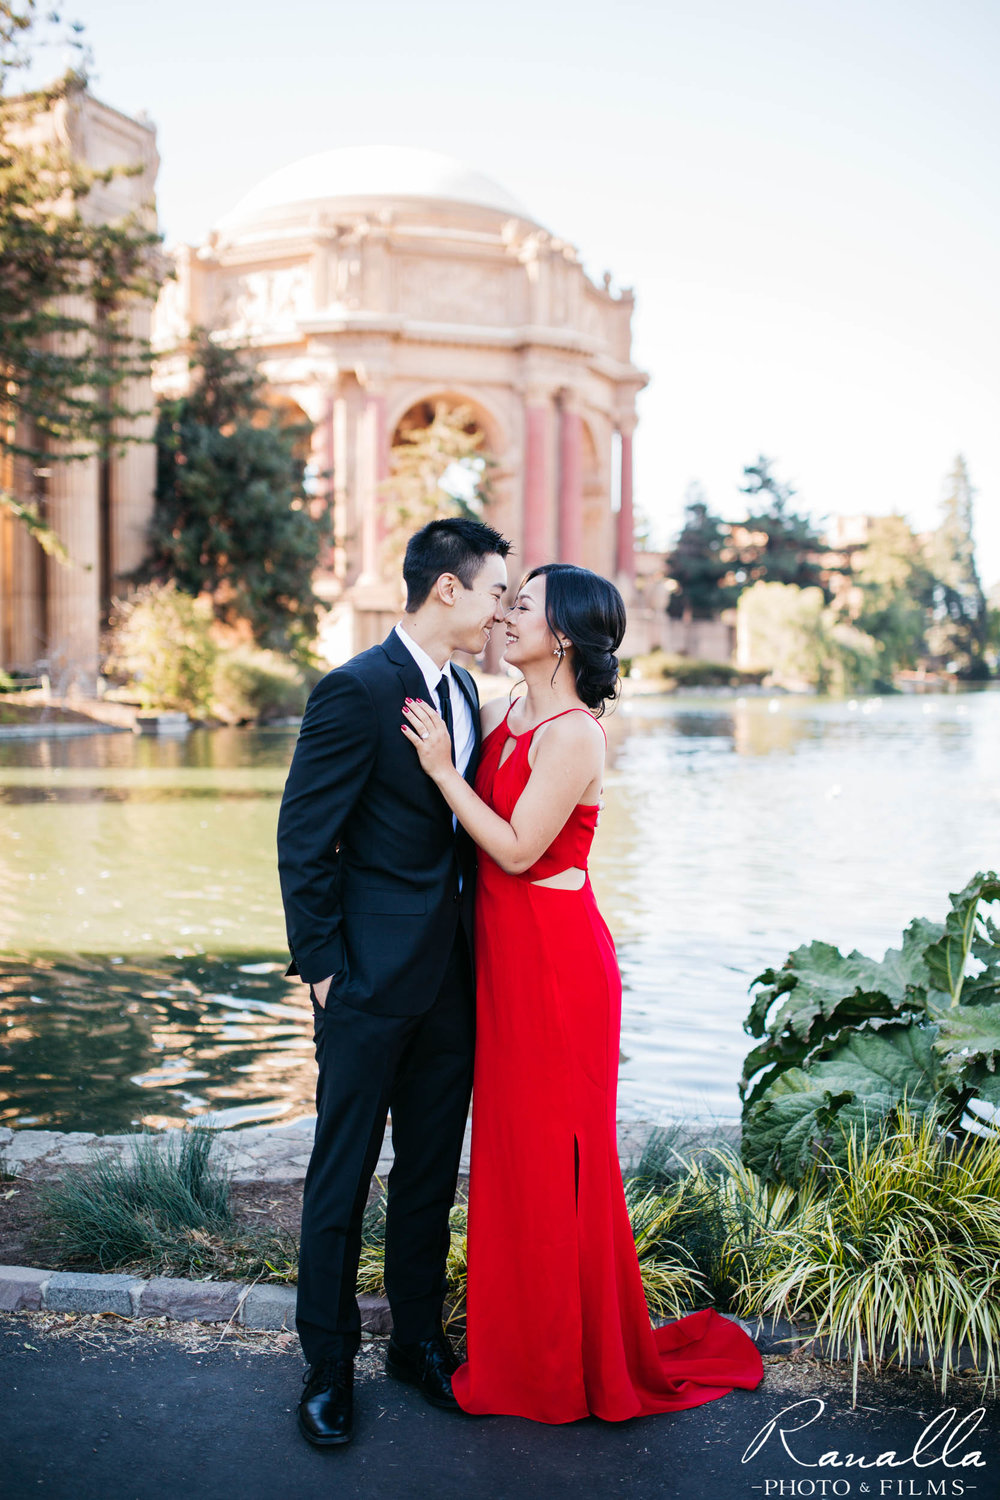 San Francisco Engagement Photography- Red Maxi Dress- Palace of Fine Arts- Wedding Photos- Ranalla Photo & Films